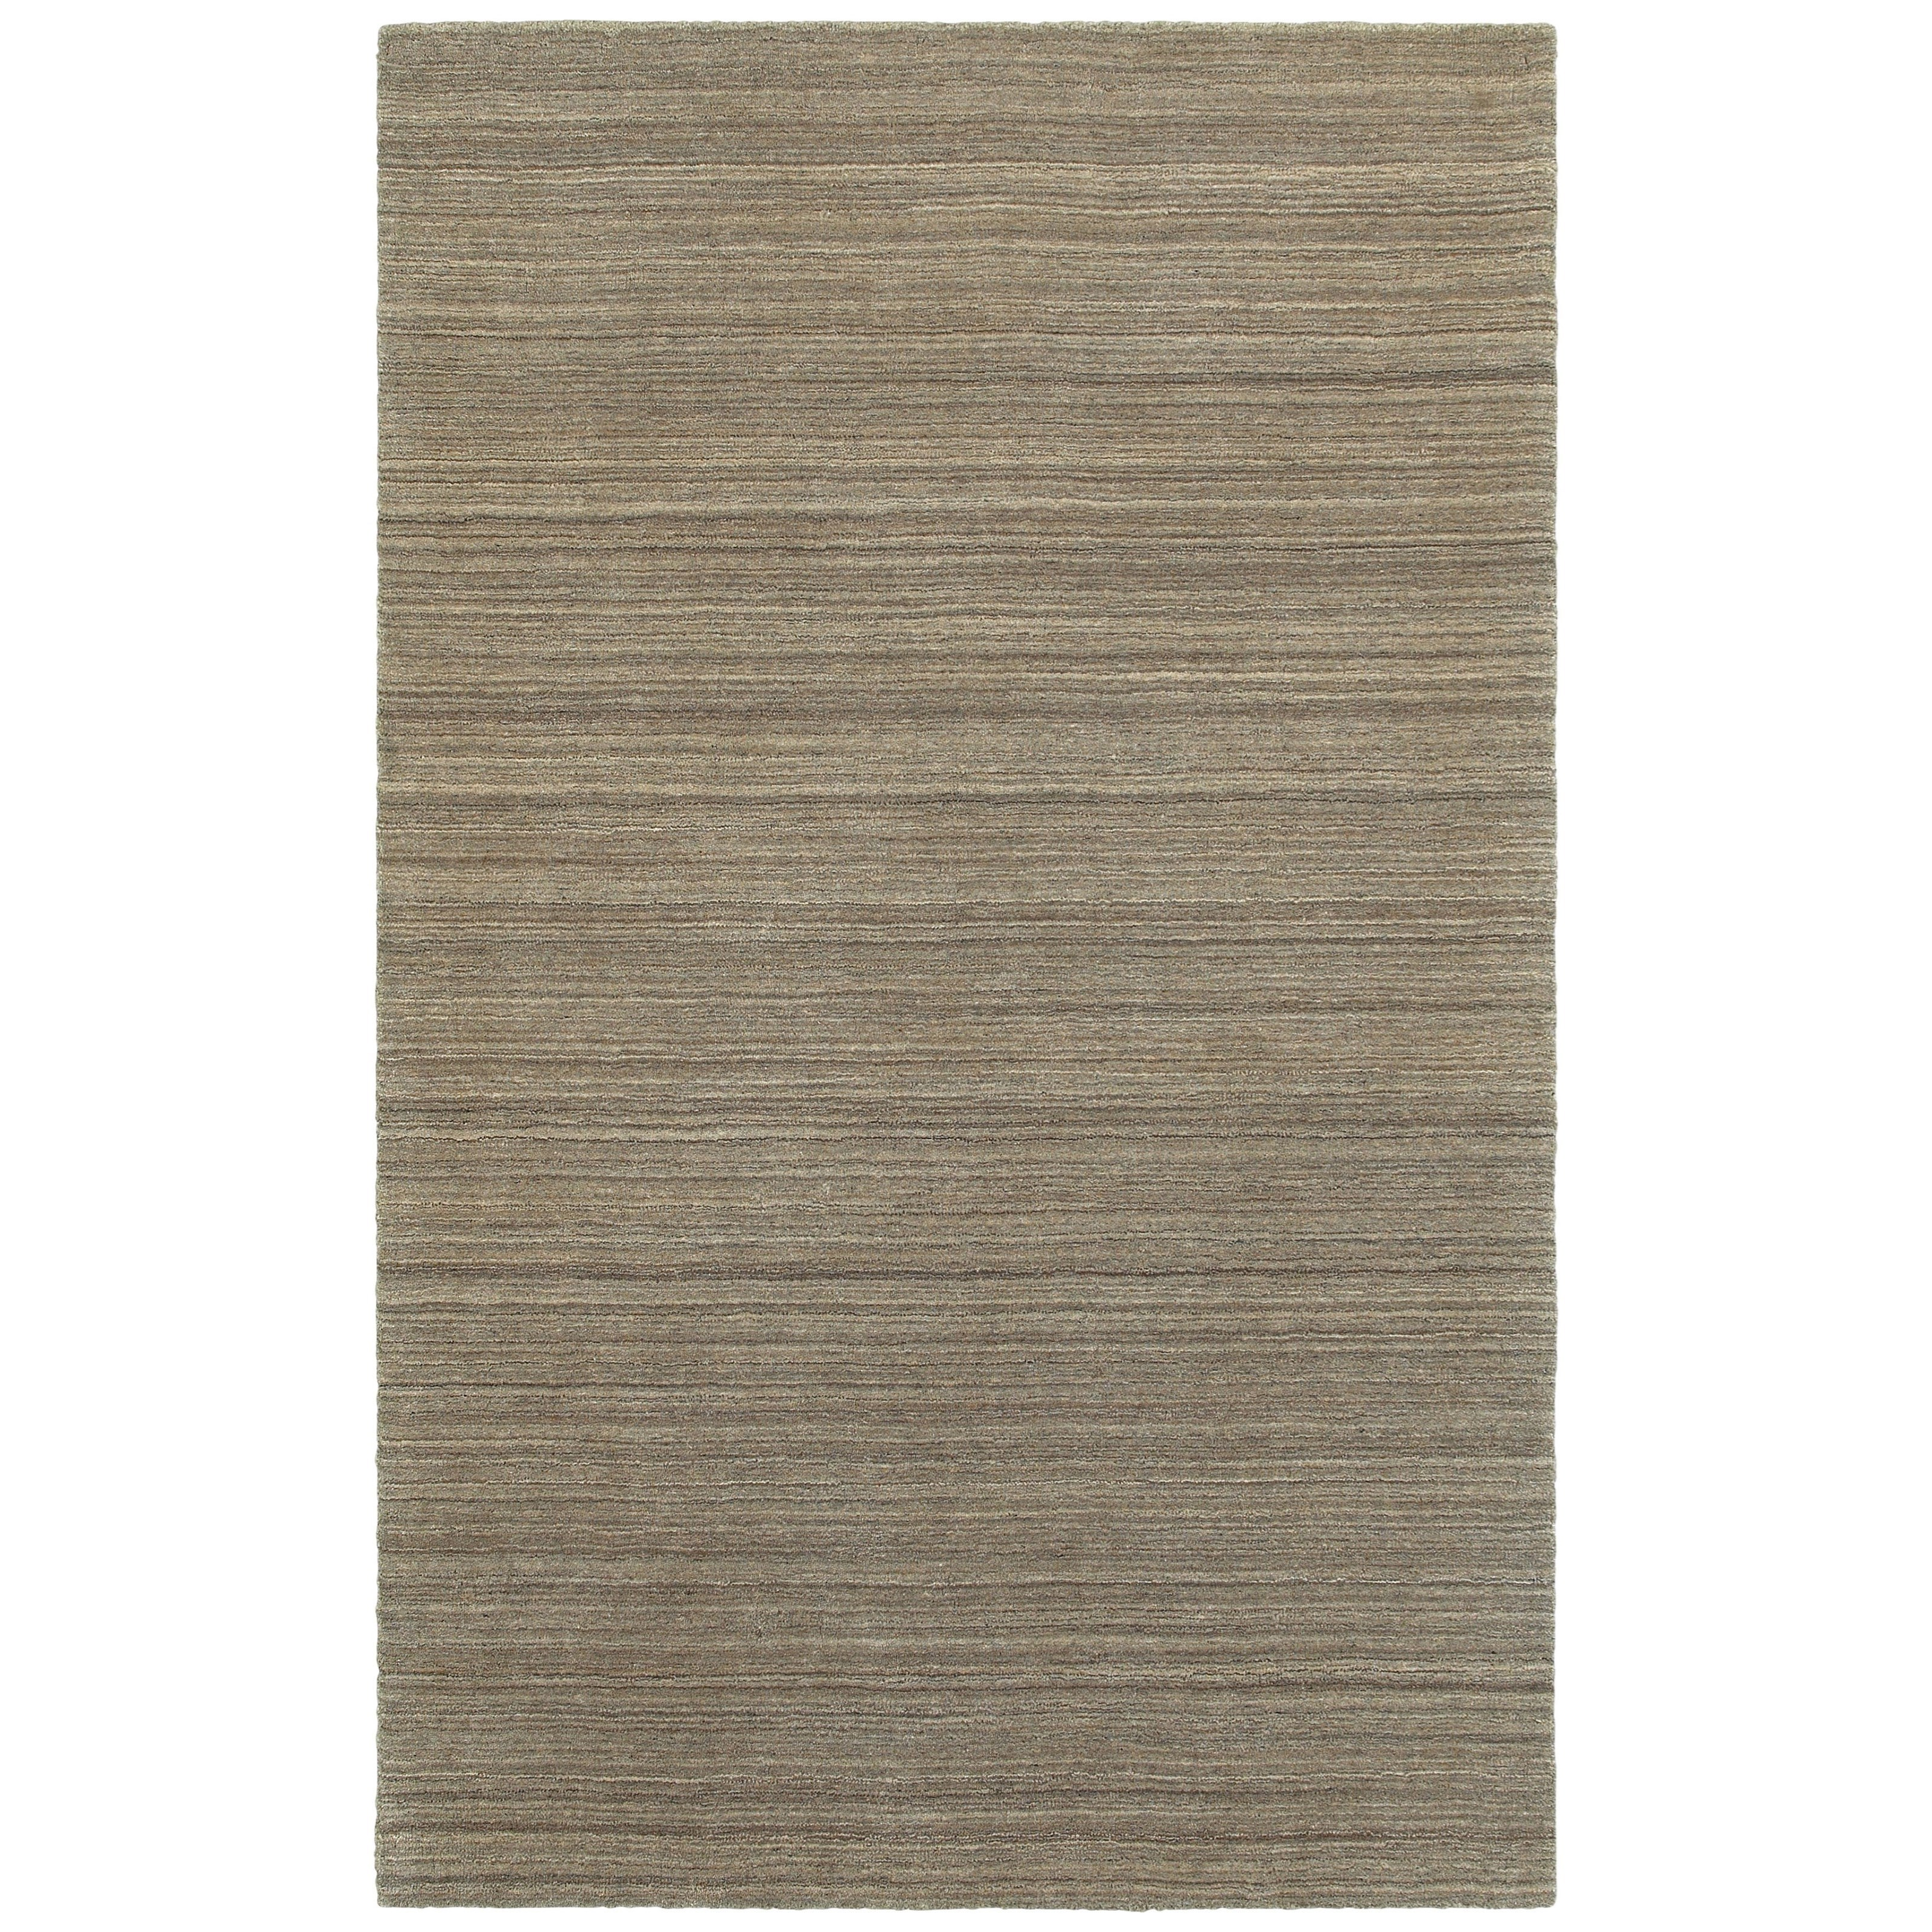 "Infused 8' 0"" X 10' 0"" Rectangle Rug by Oriental Weavers at Steger's Furniture"